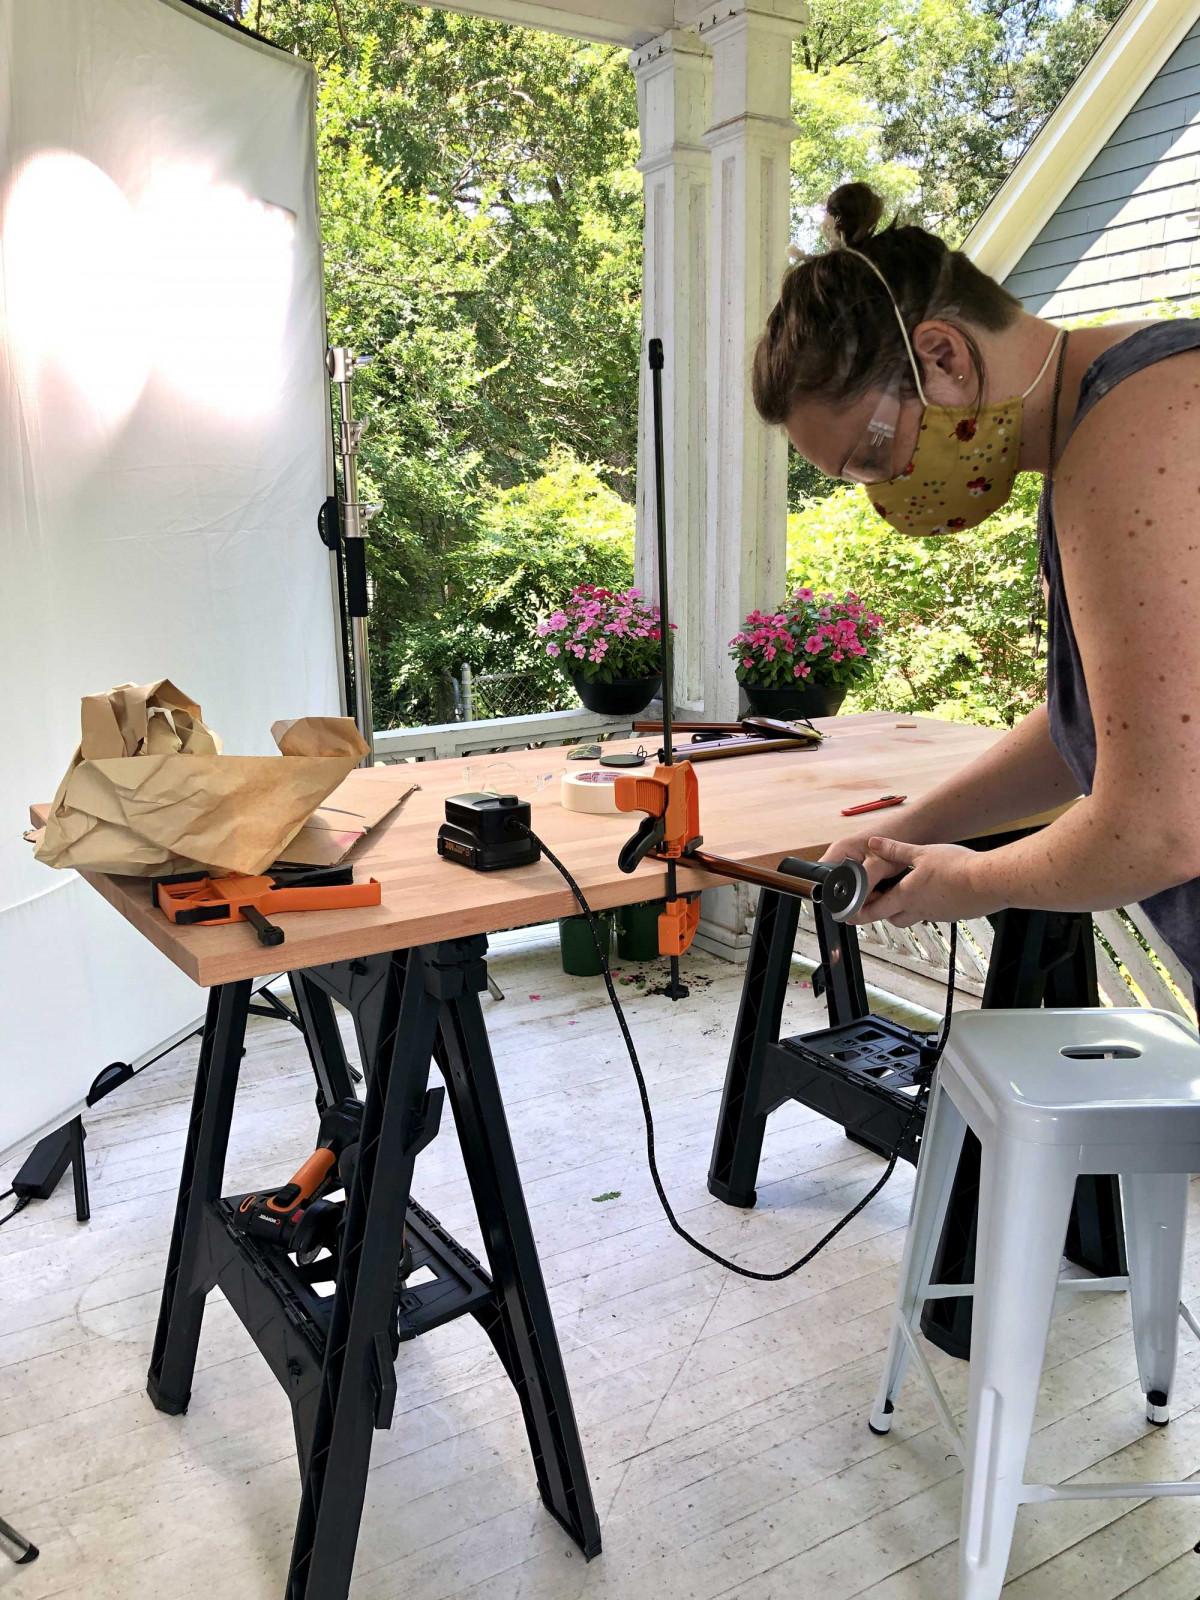 Woman using WORX tools at an outside work bench